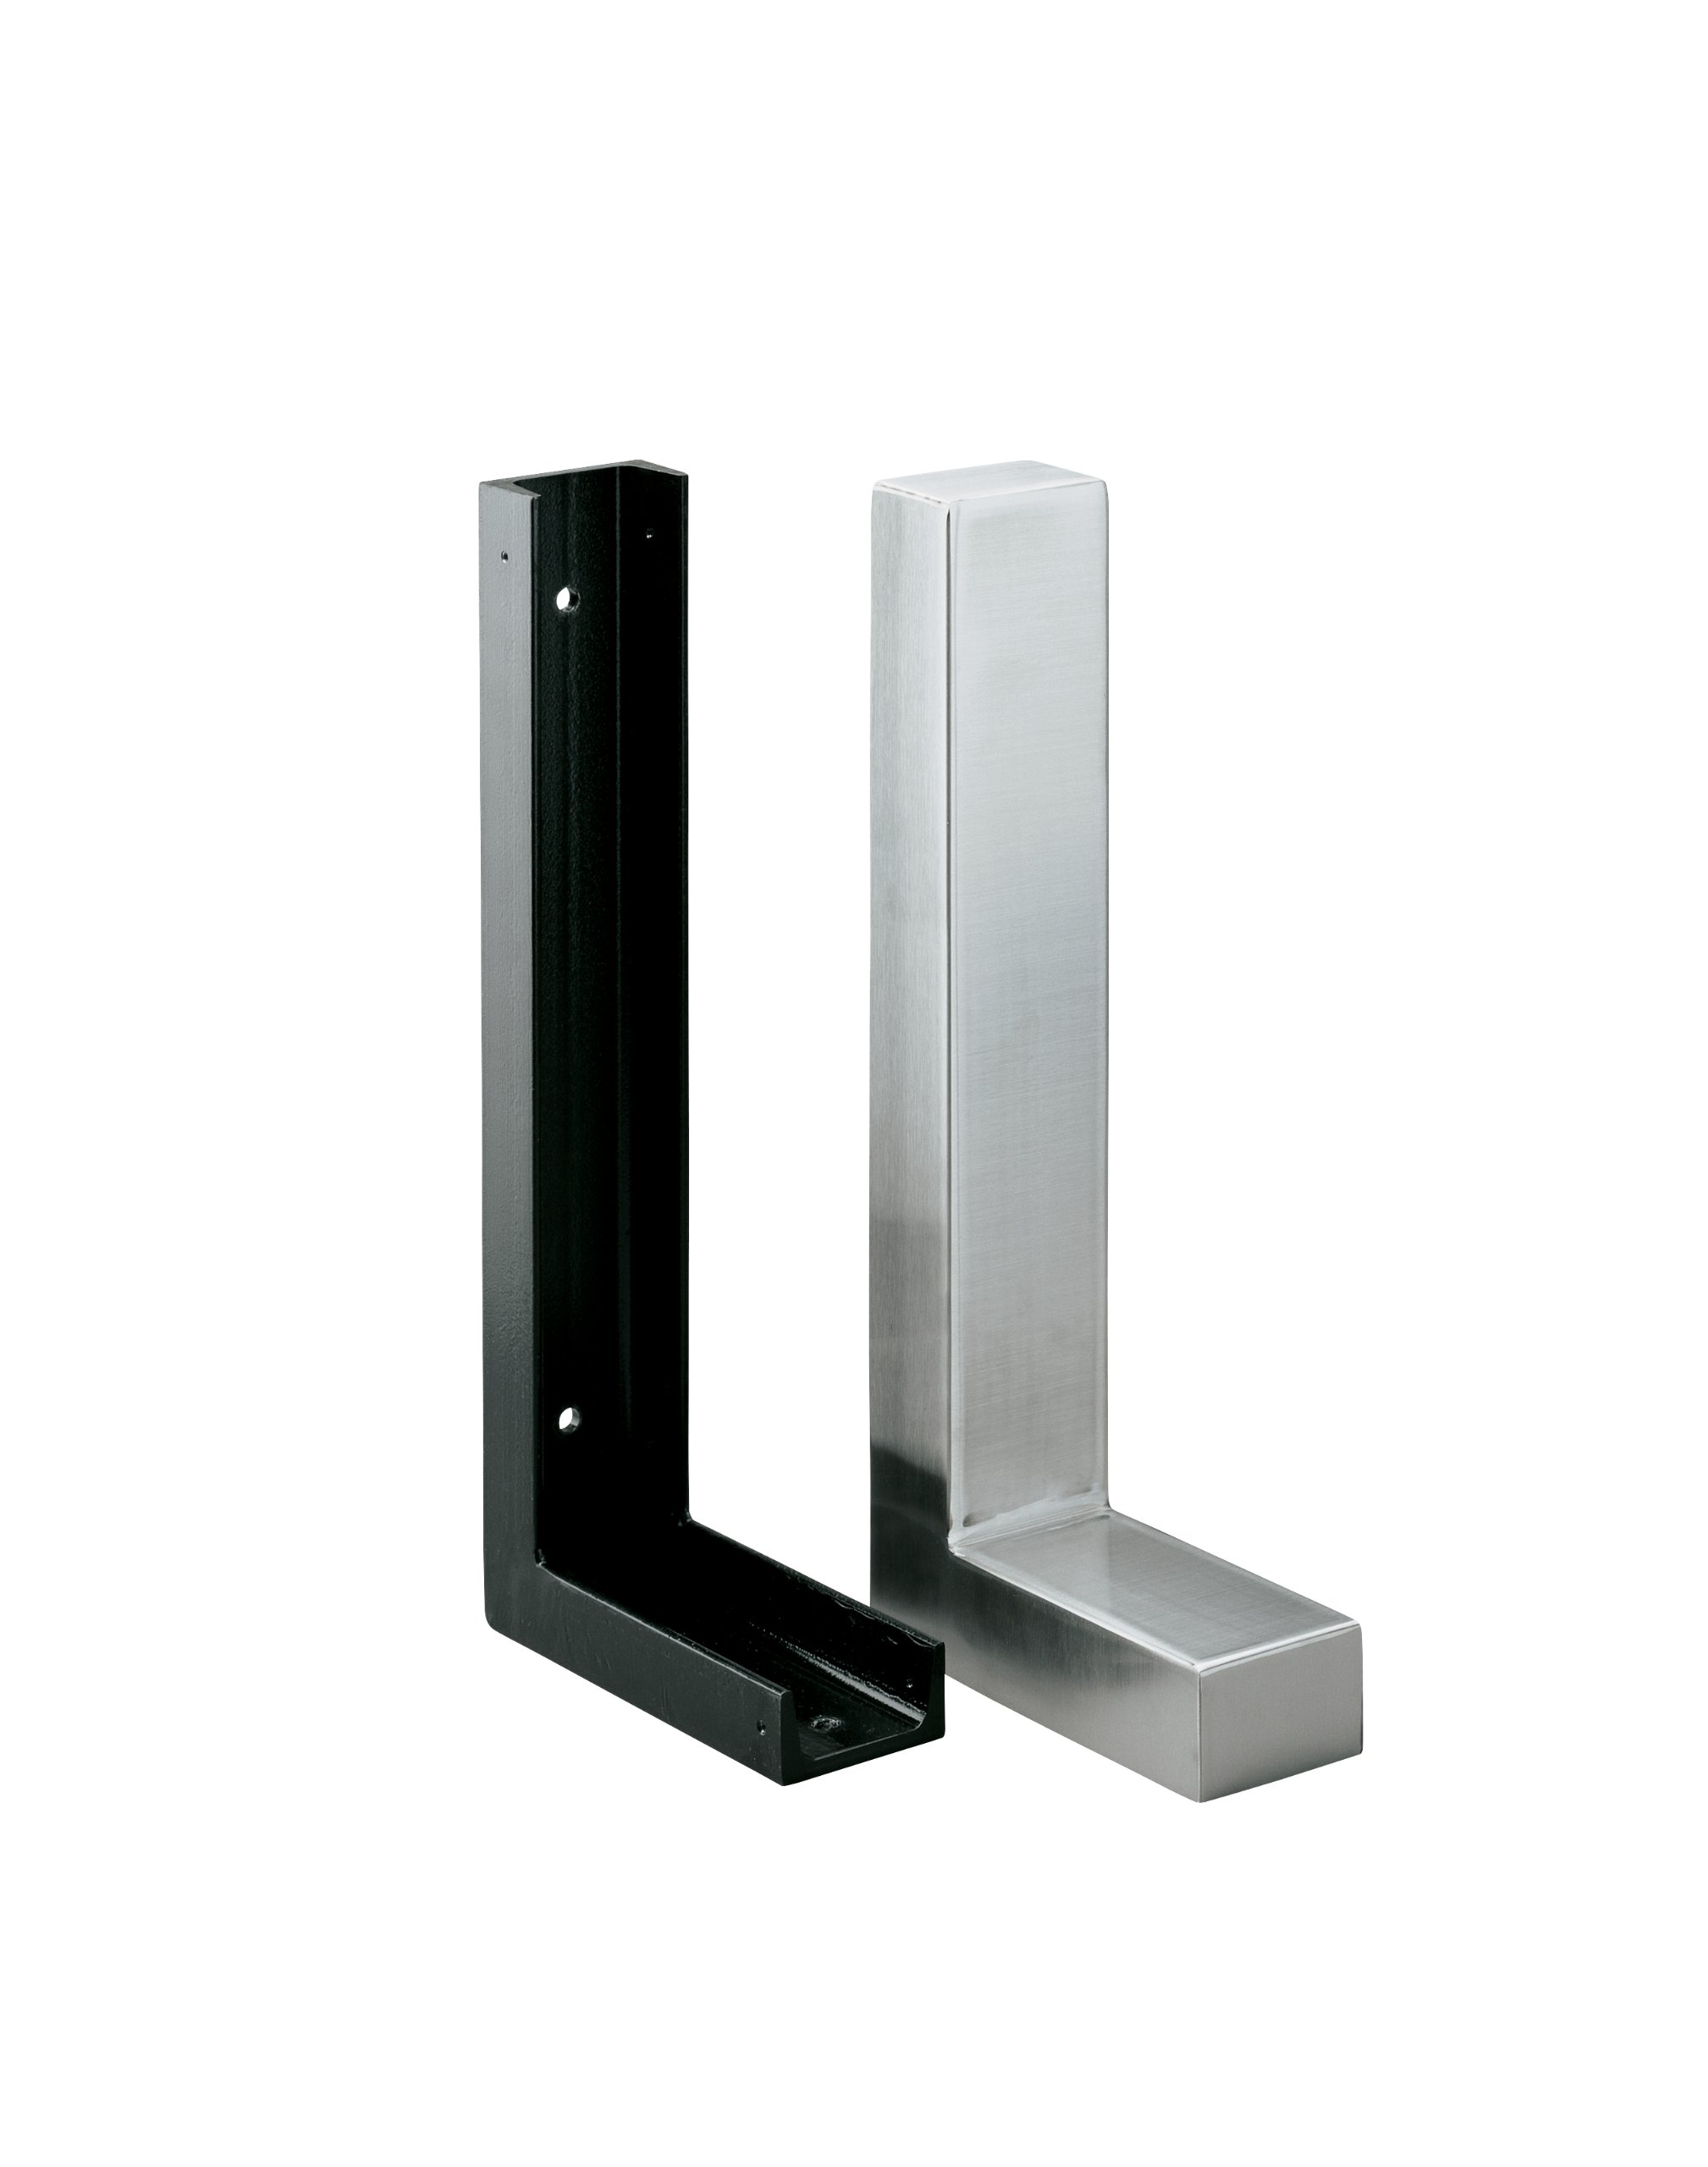 KOHLER K-9676-NA Purist Left-Facing Countertop Bracket by Kohler